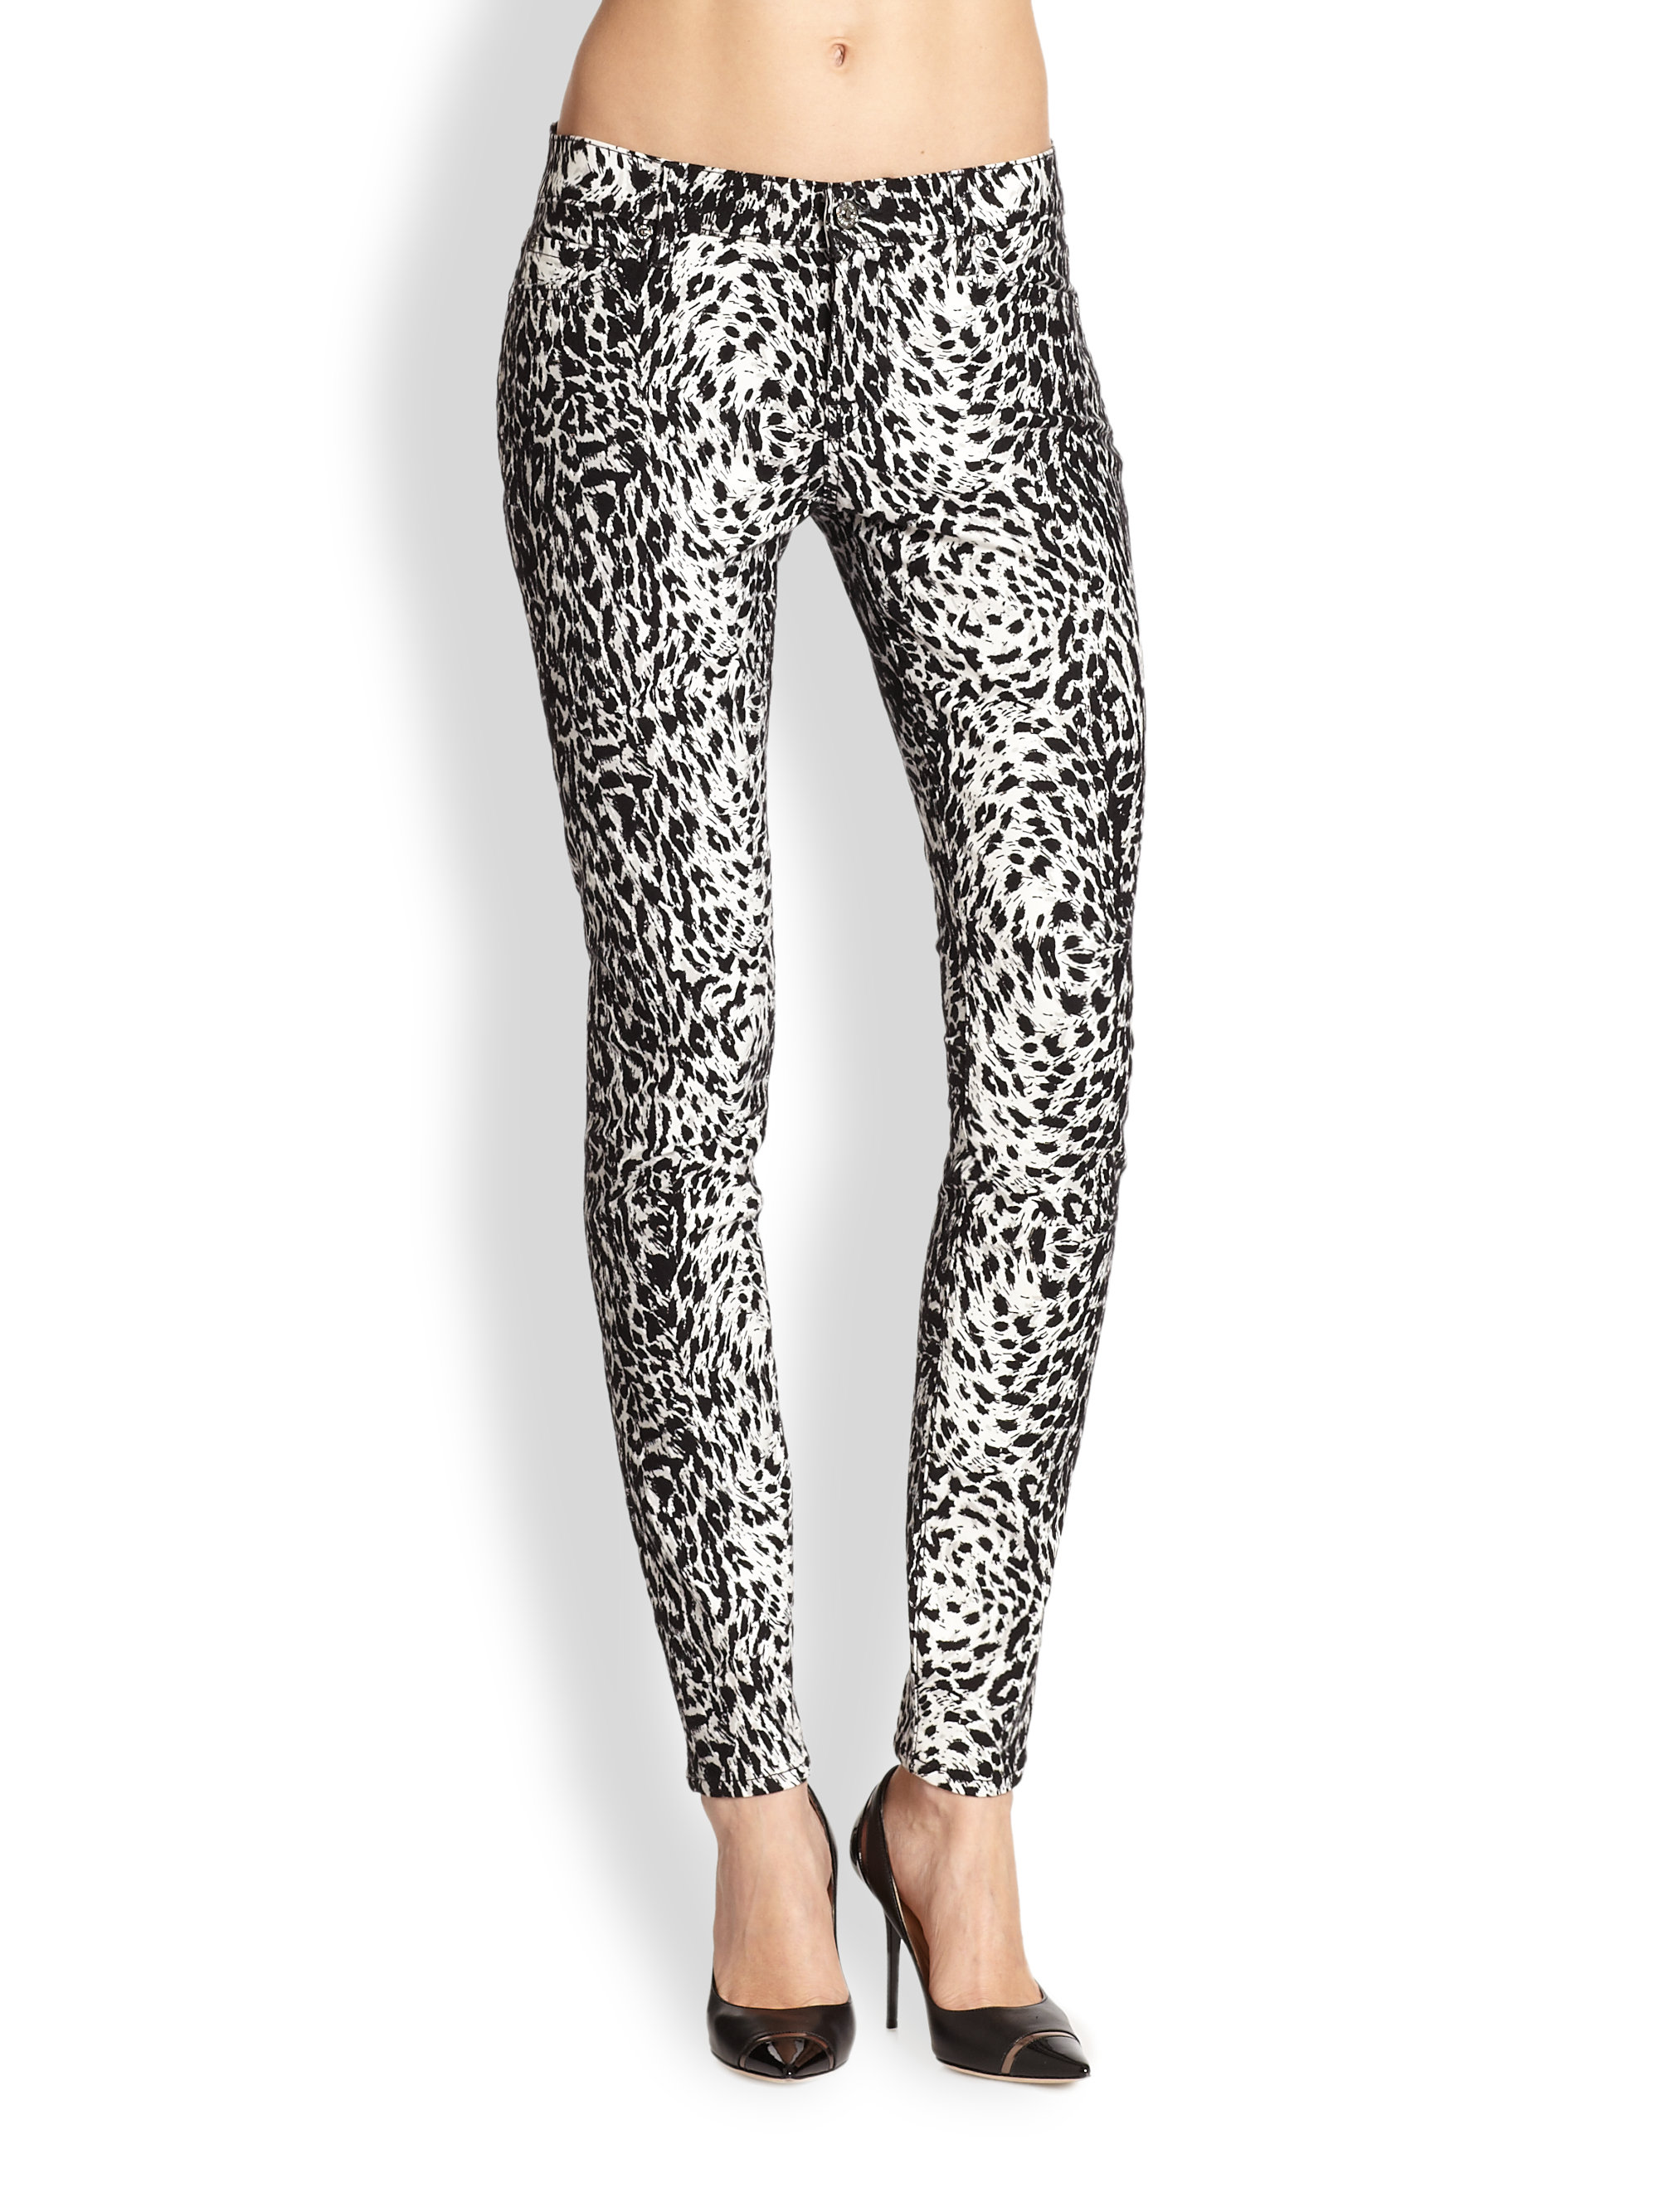 Lyst Leopard The Waistband All Print 7 For Mankind Countour Skinny RxqRHrU1